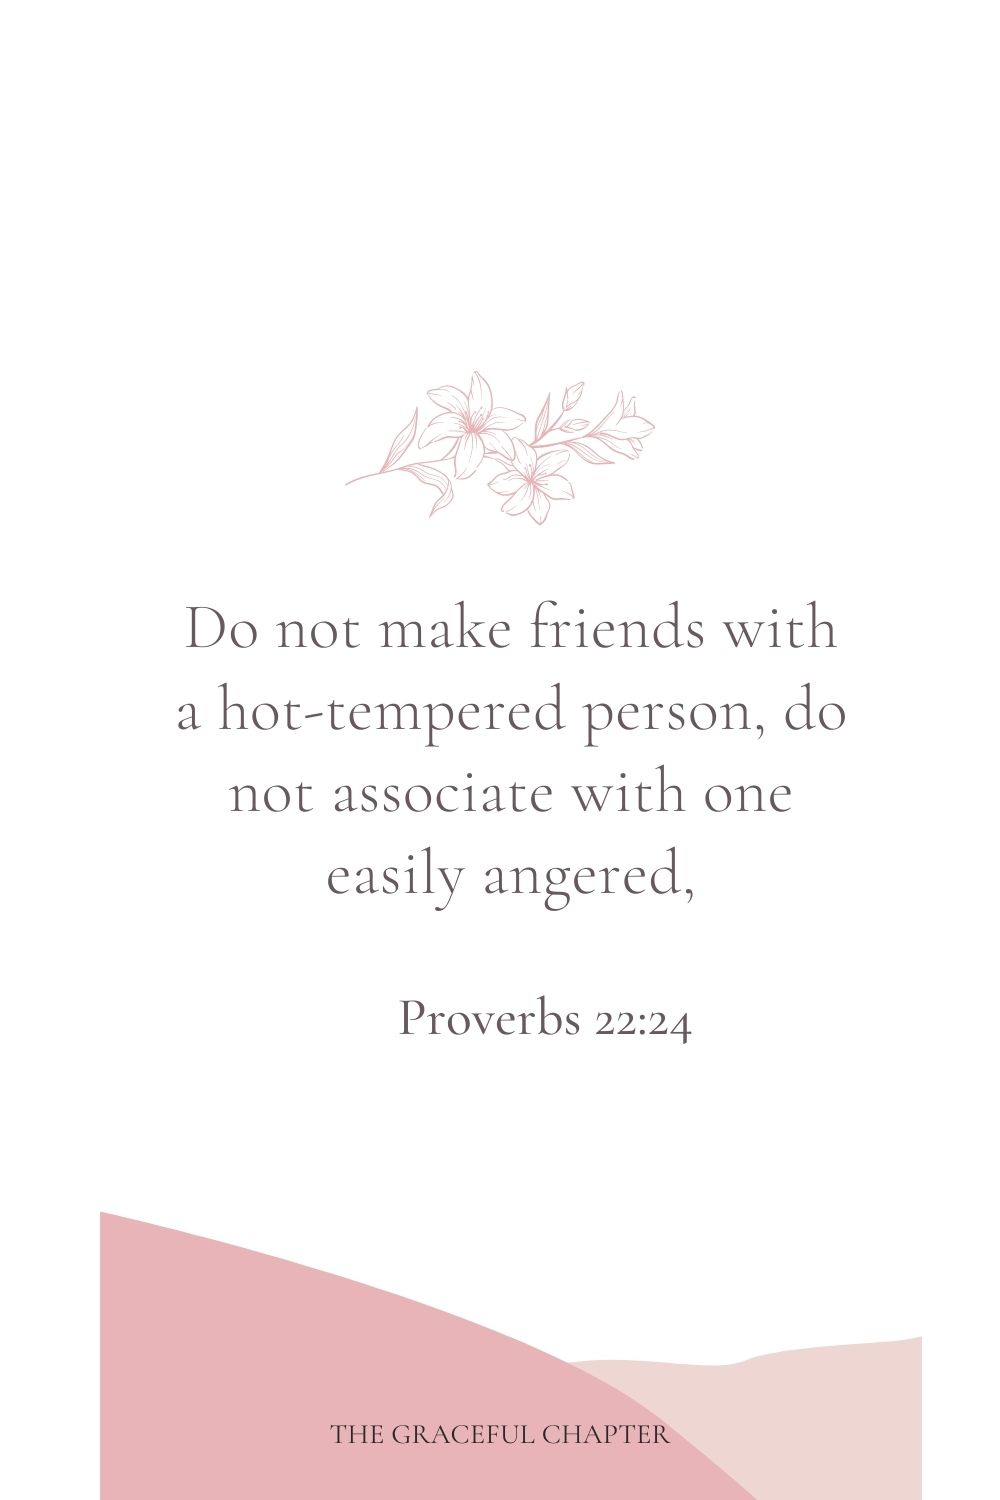 Do not make friends with a hot-tempered person, do not associate with one easily angered, Proverbs 22:24